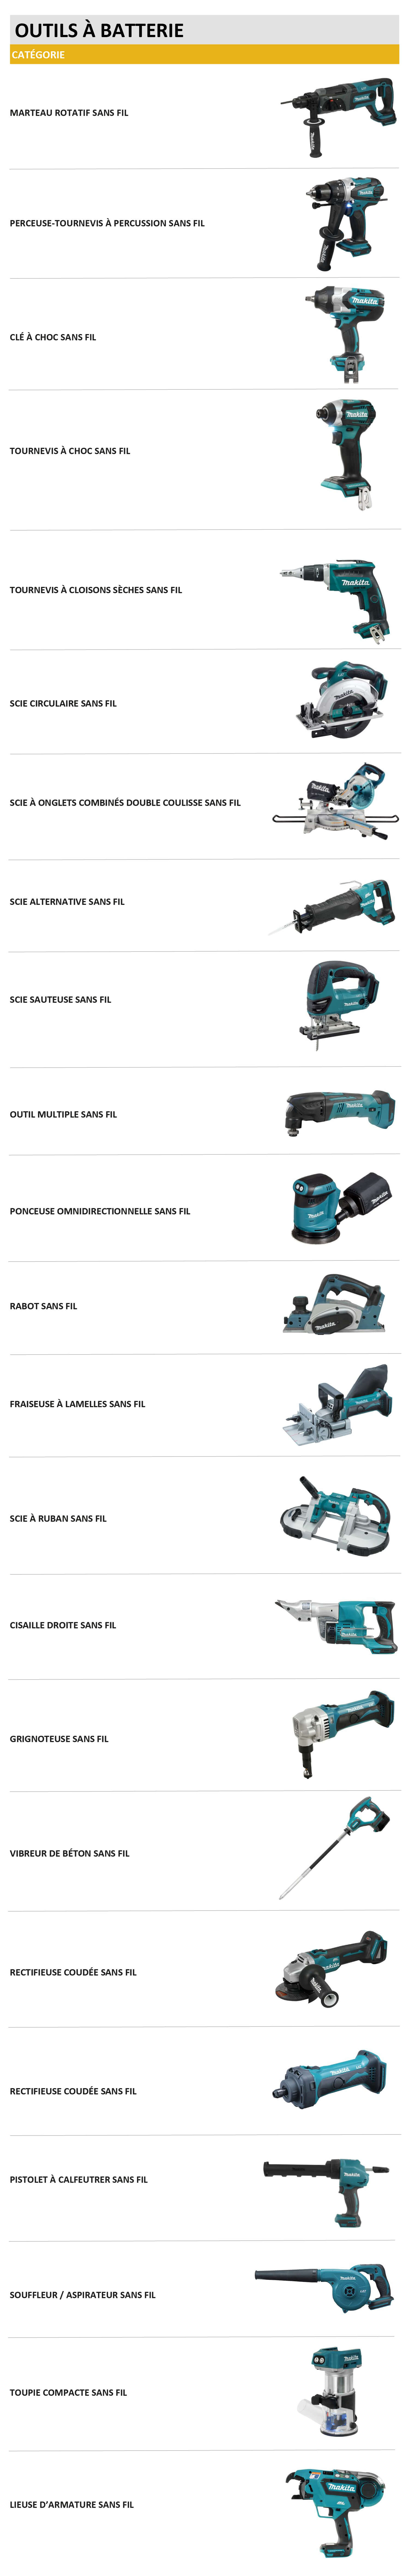 101-outils-a-batterie-makita